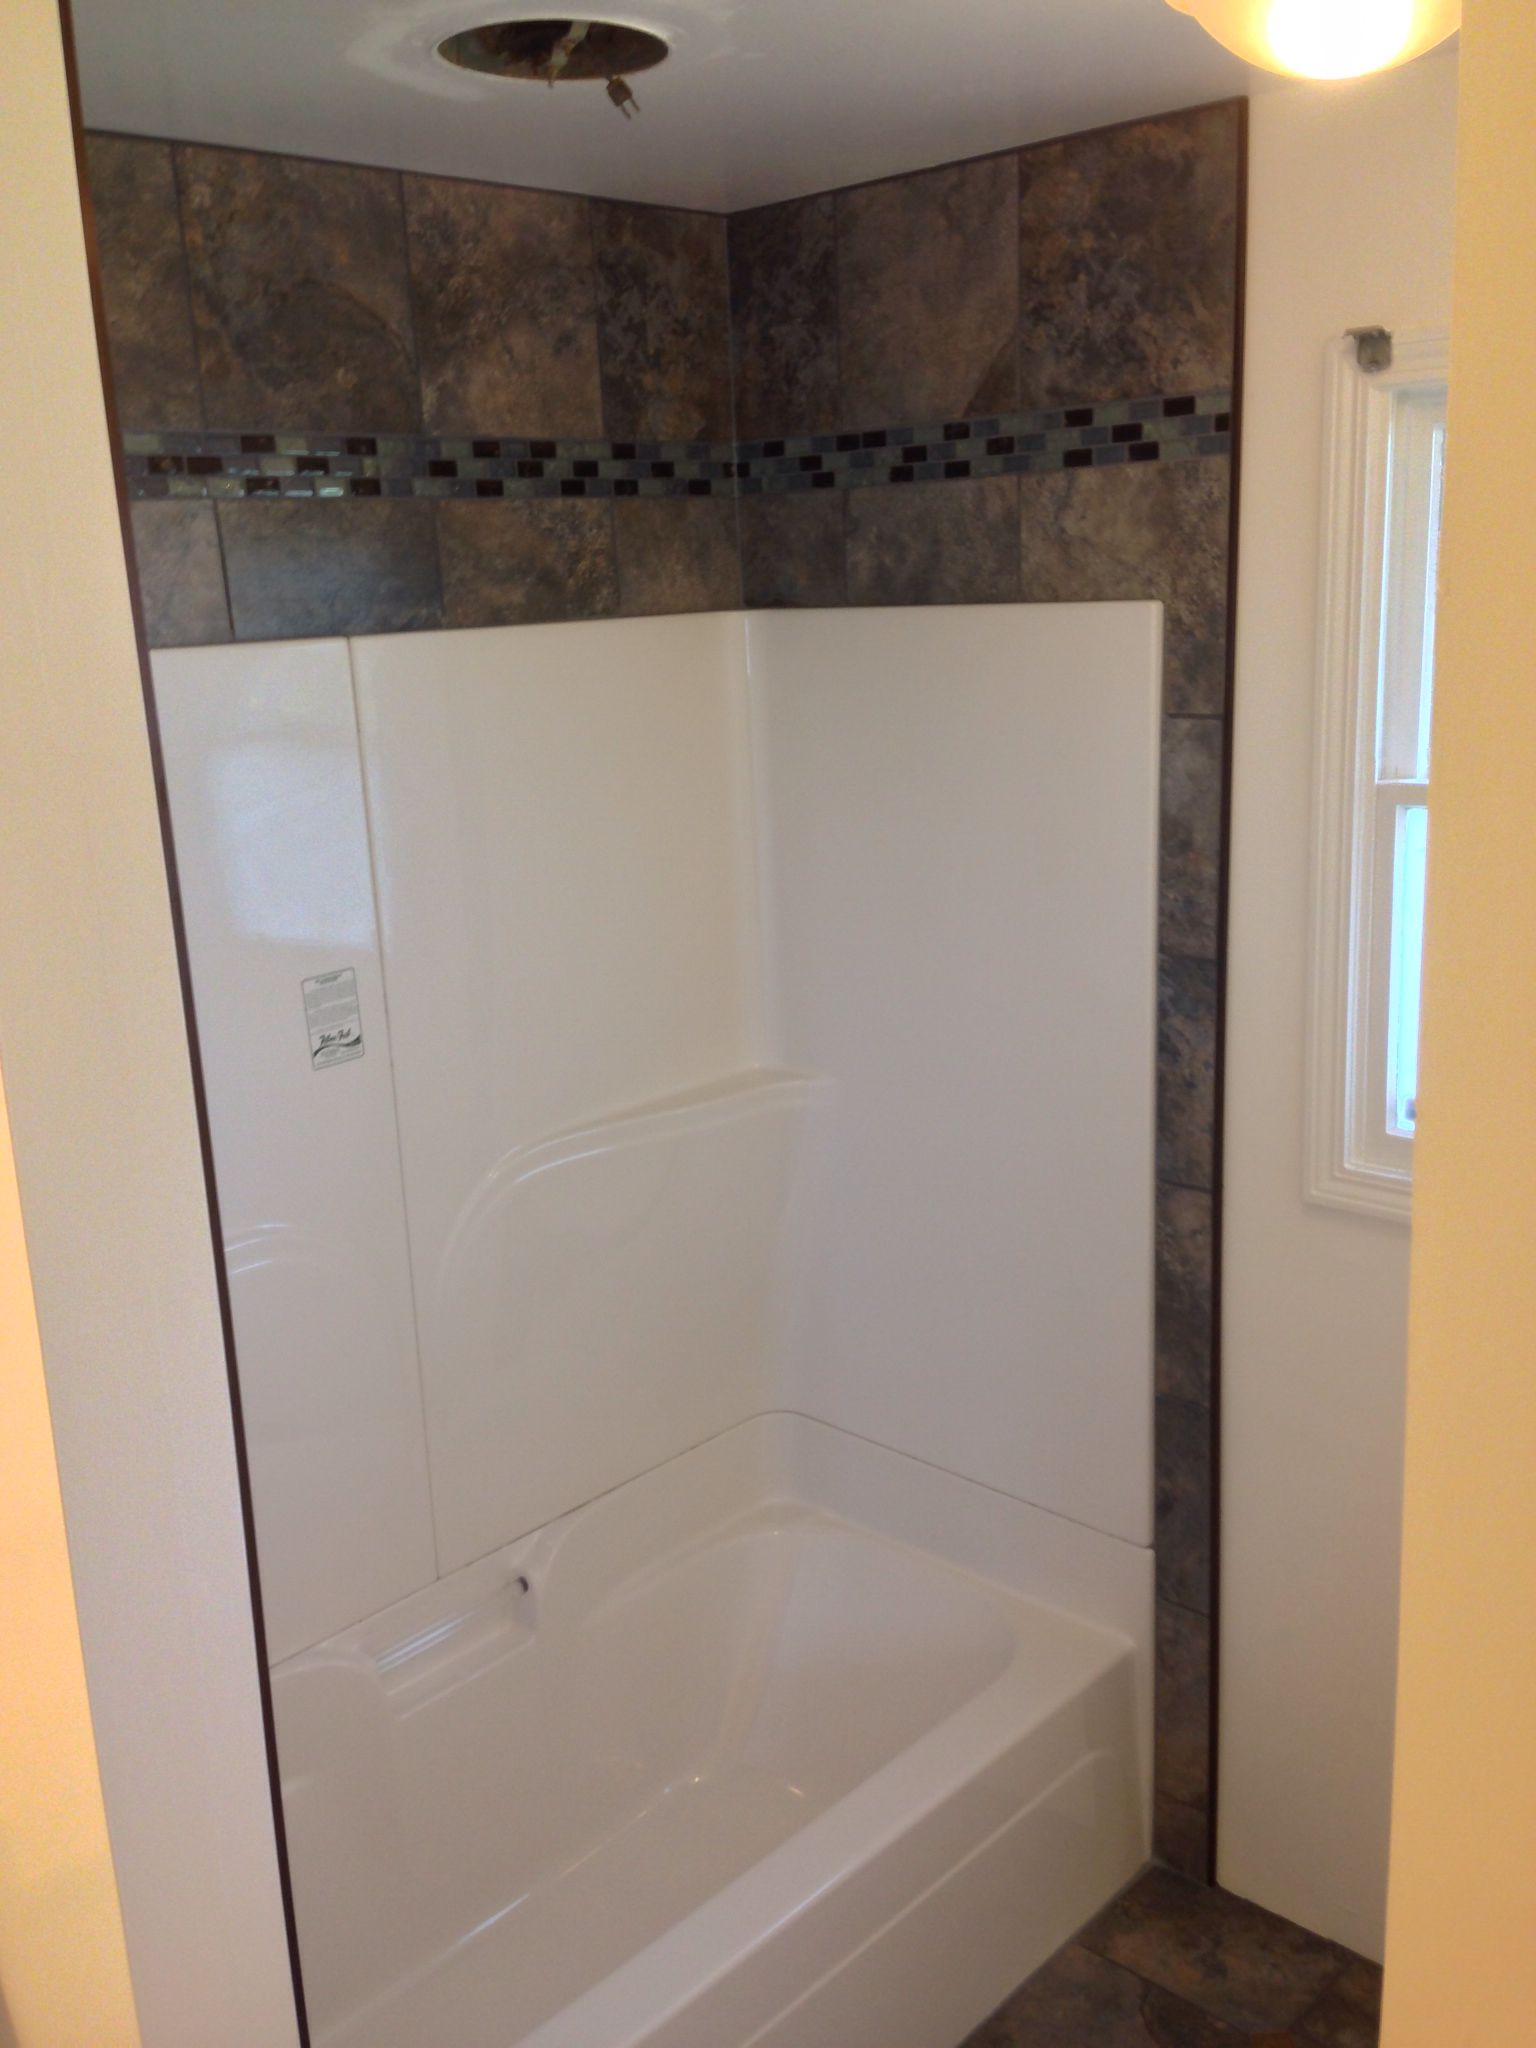 Want to dress up that empty space above your shower or tub Best way to tile around a bath